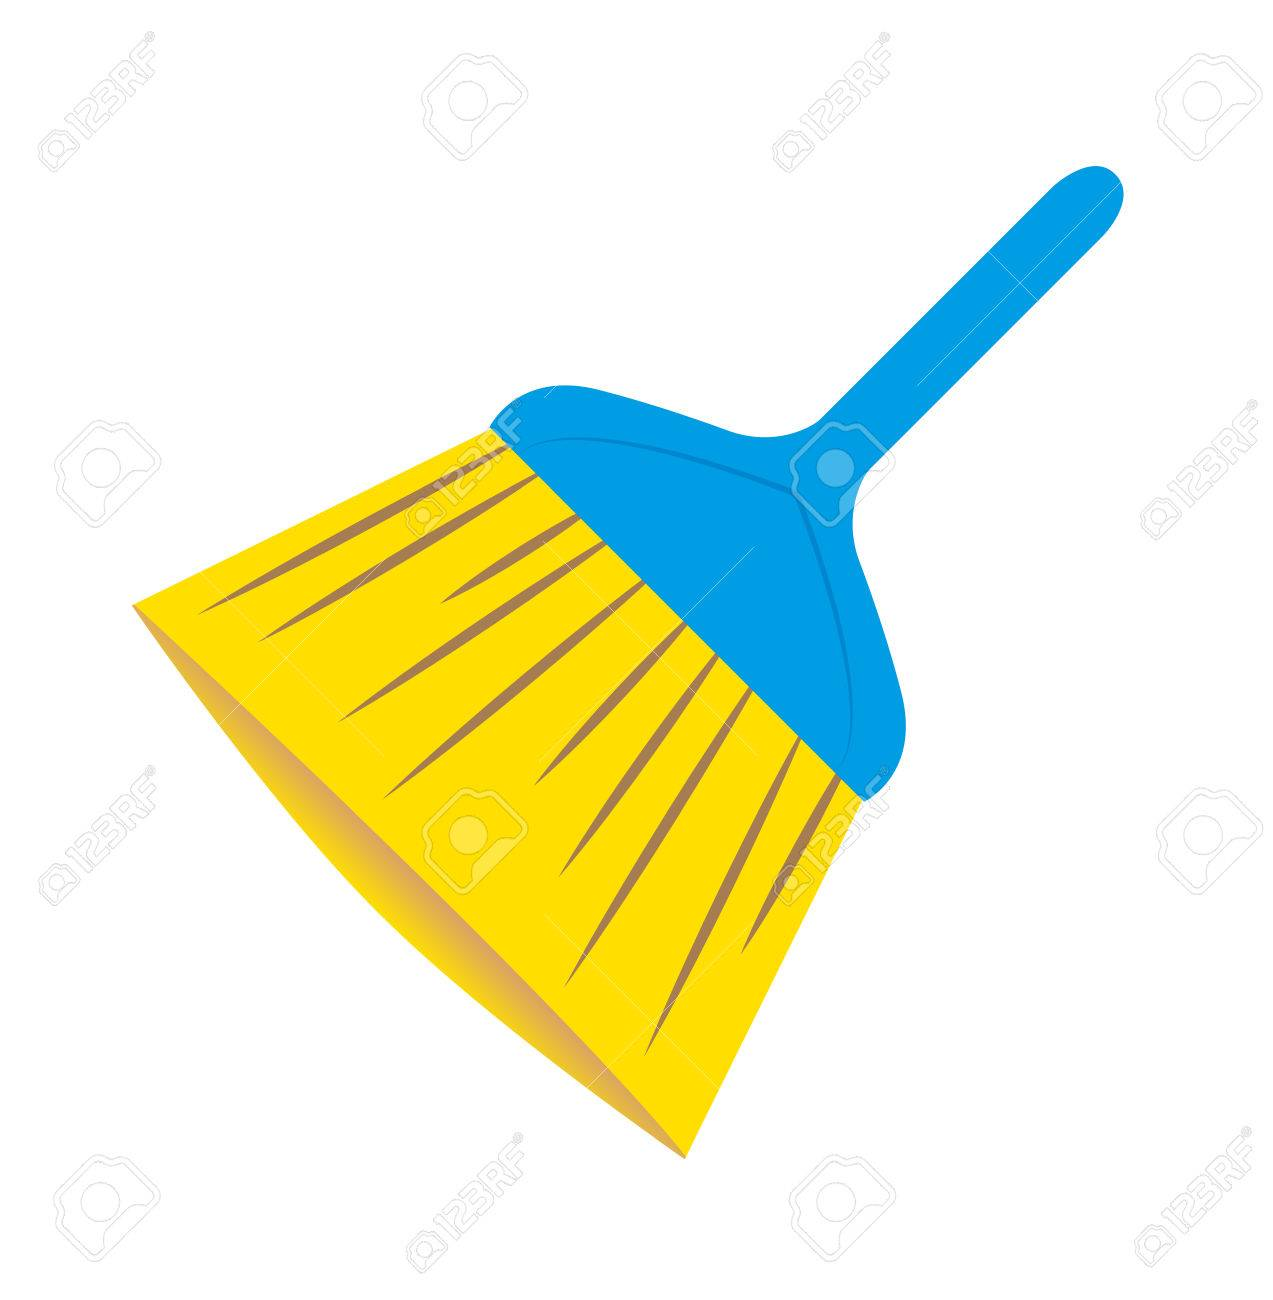 cleaning brush vector royalty free cliparts vectors and stock rh 123rf com brush victoria texas brush vectoriel